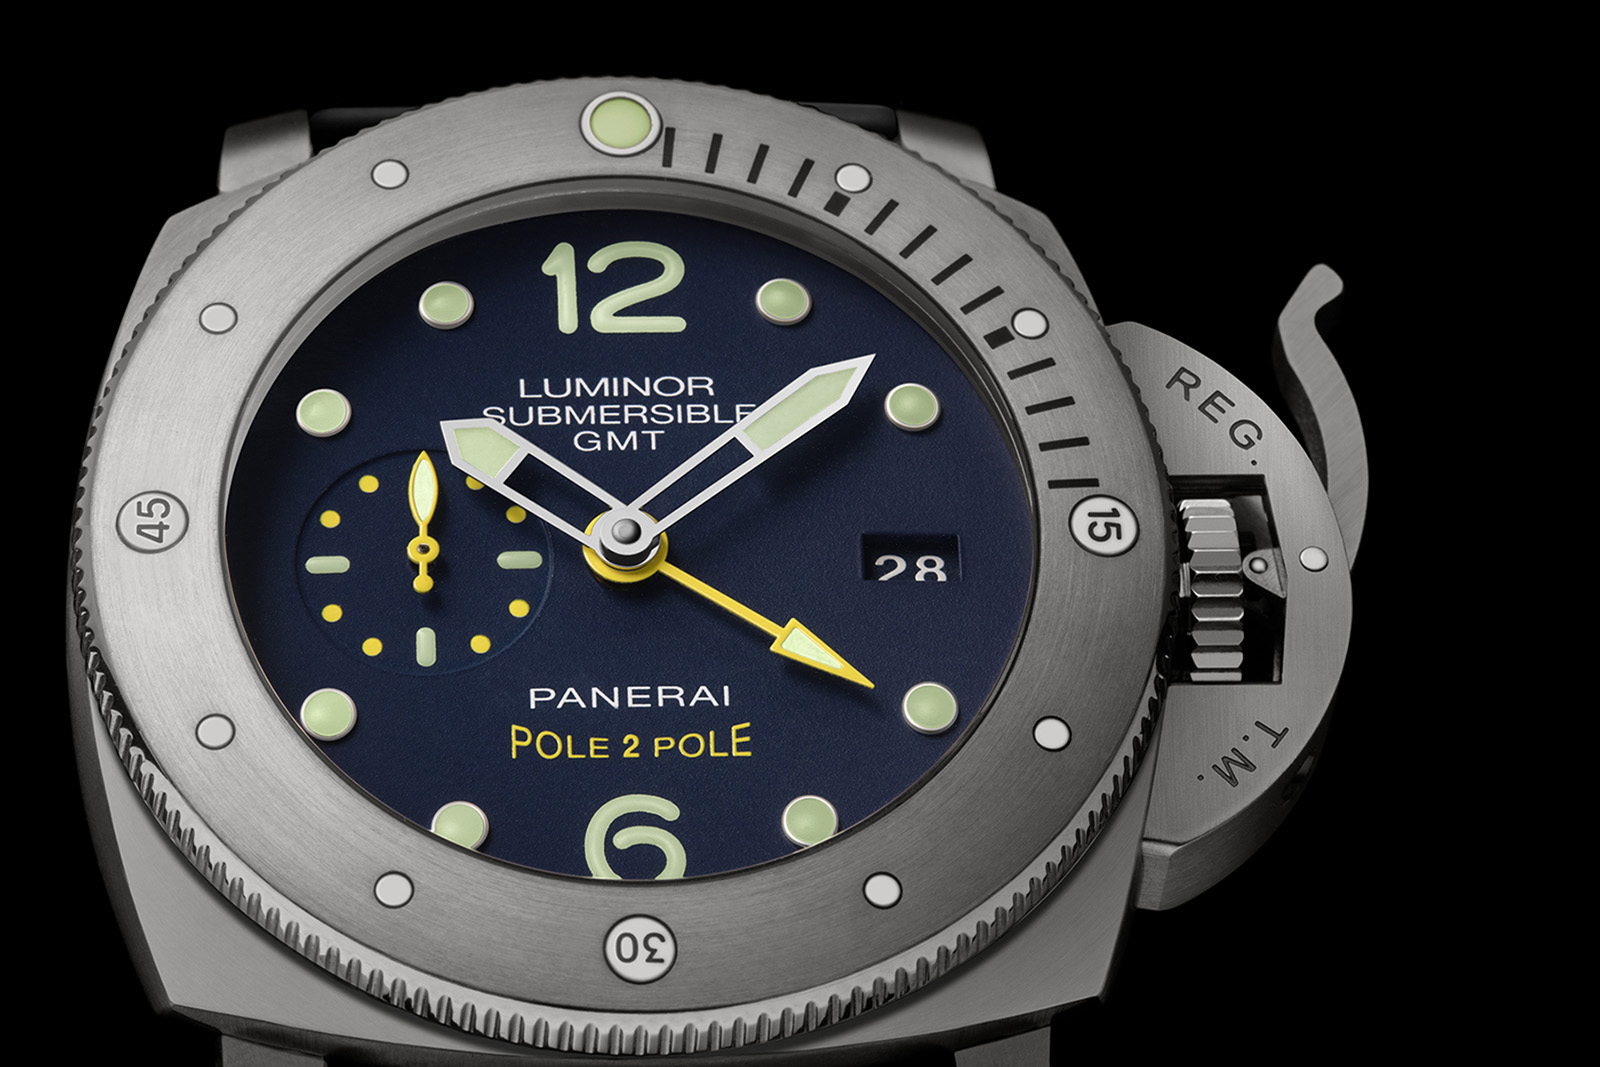 Panerai Luminor Submersible 1950 GMT Pole2Pole